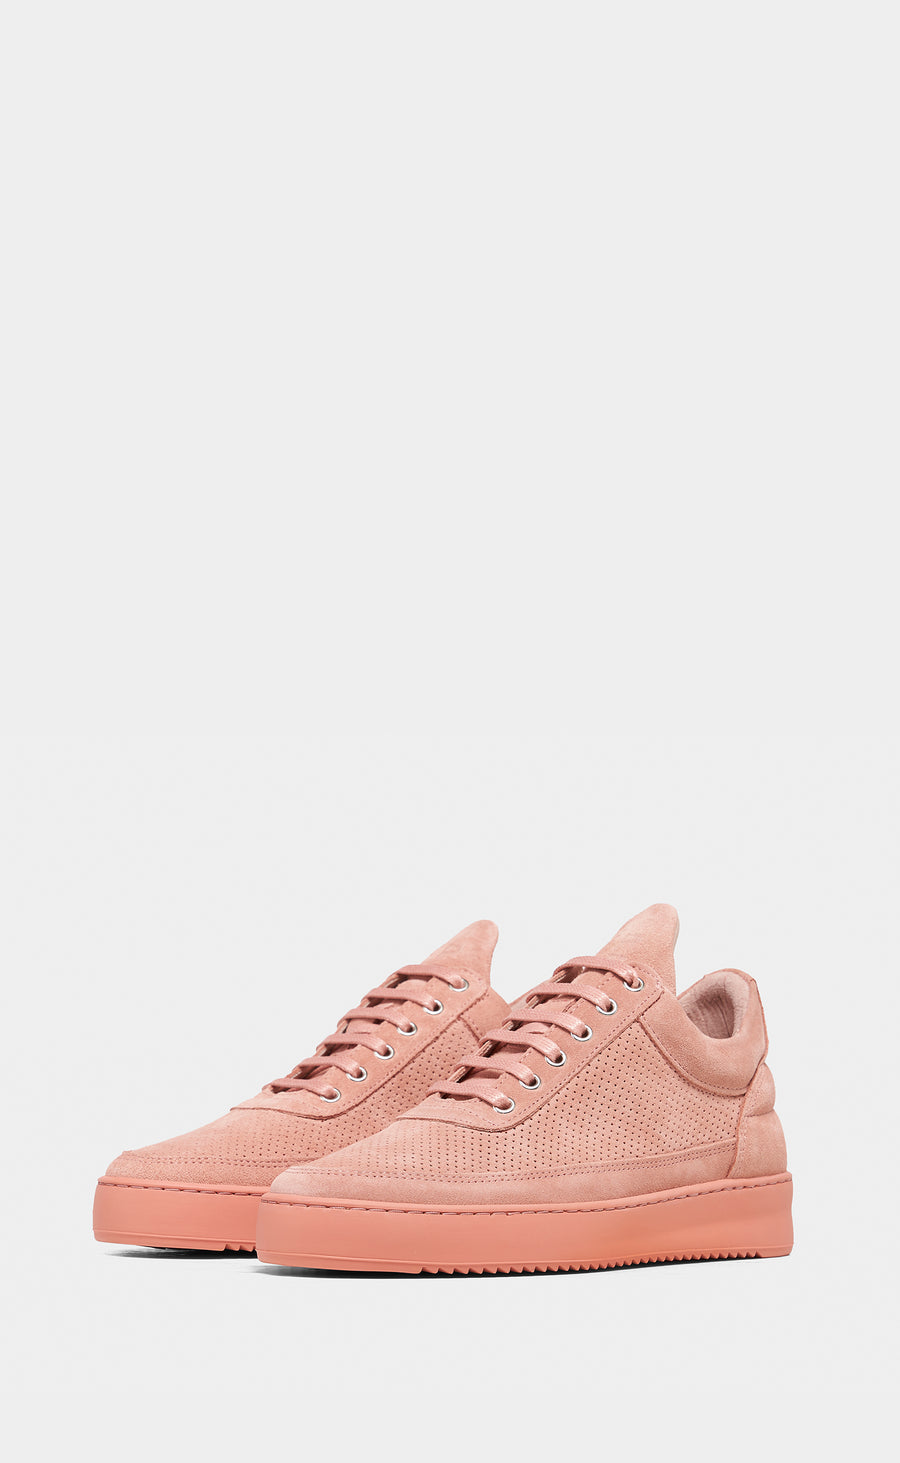 Low Top Ripple Suede Perforated Pink